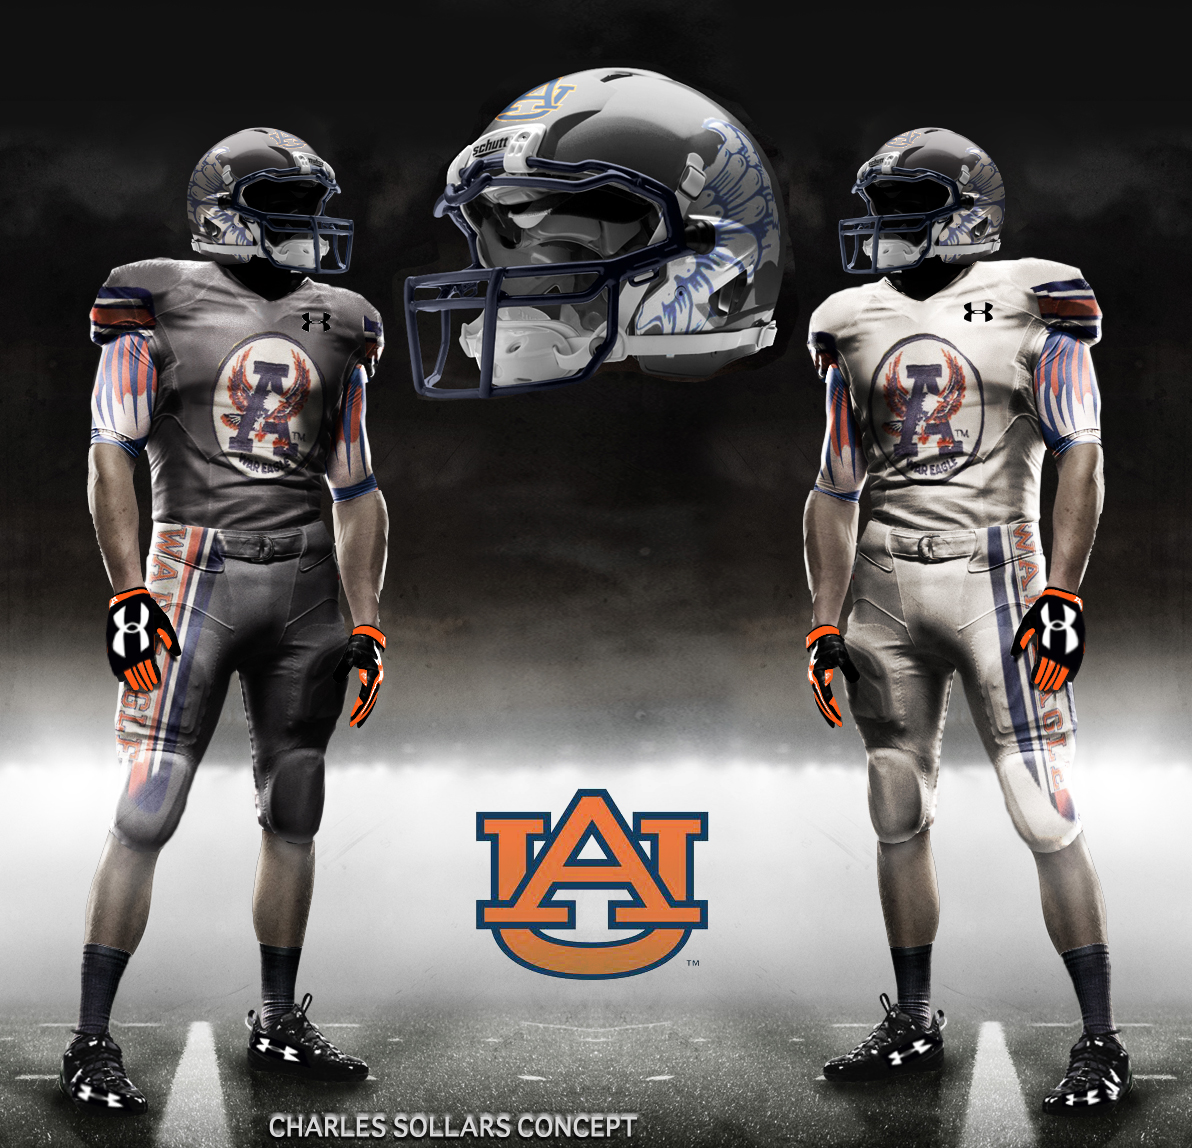 WarBlogle com - A Few Very Eccentric Auburn Uniform ConceptsUnder Armour Football Uniform Template